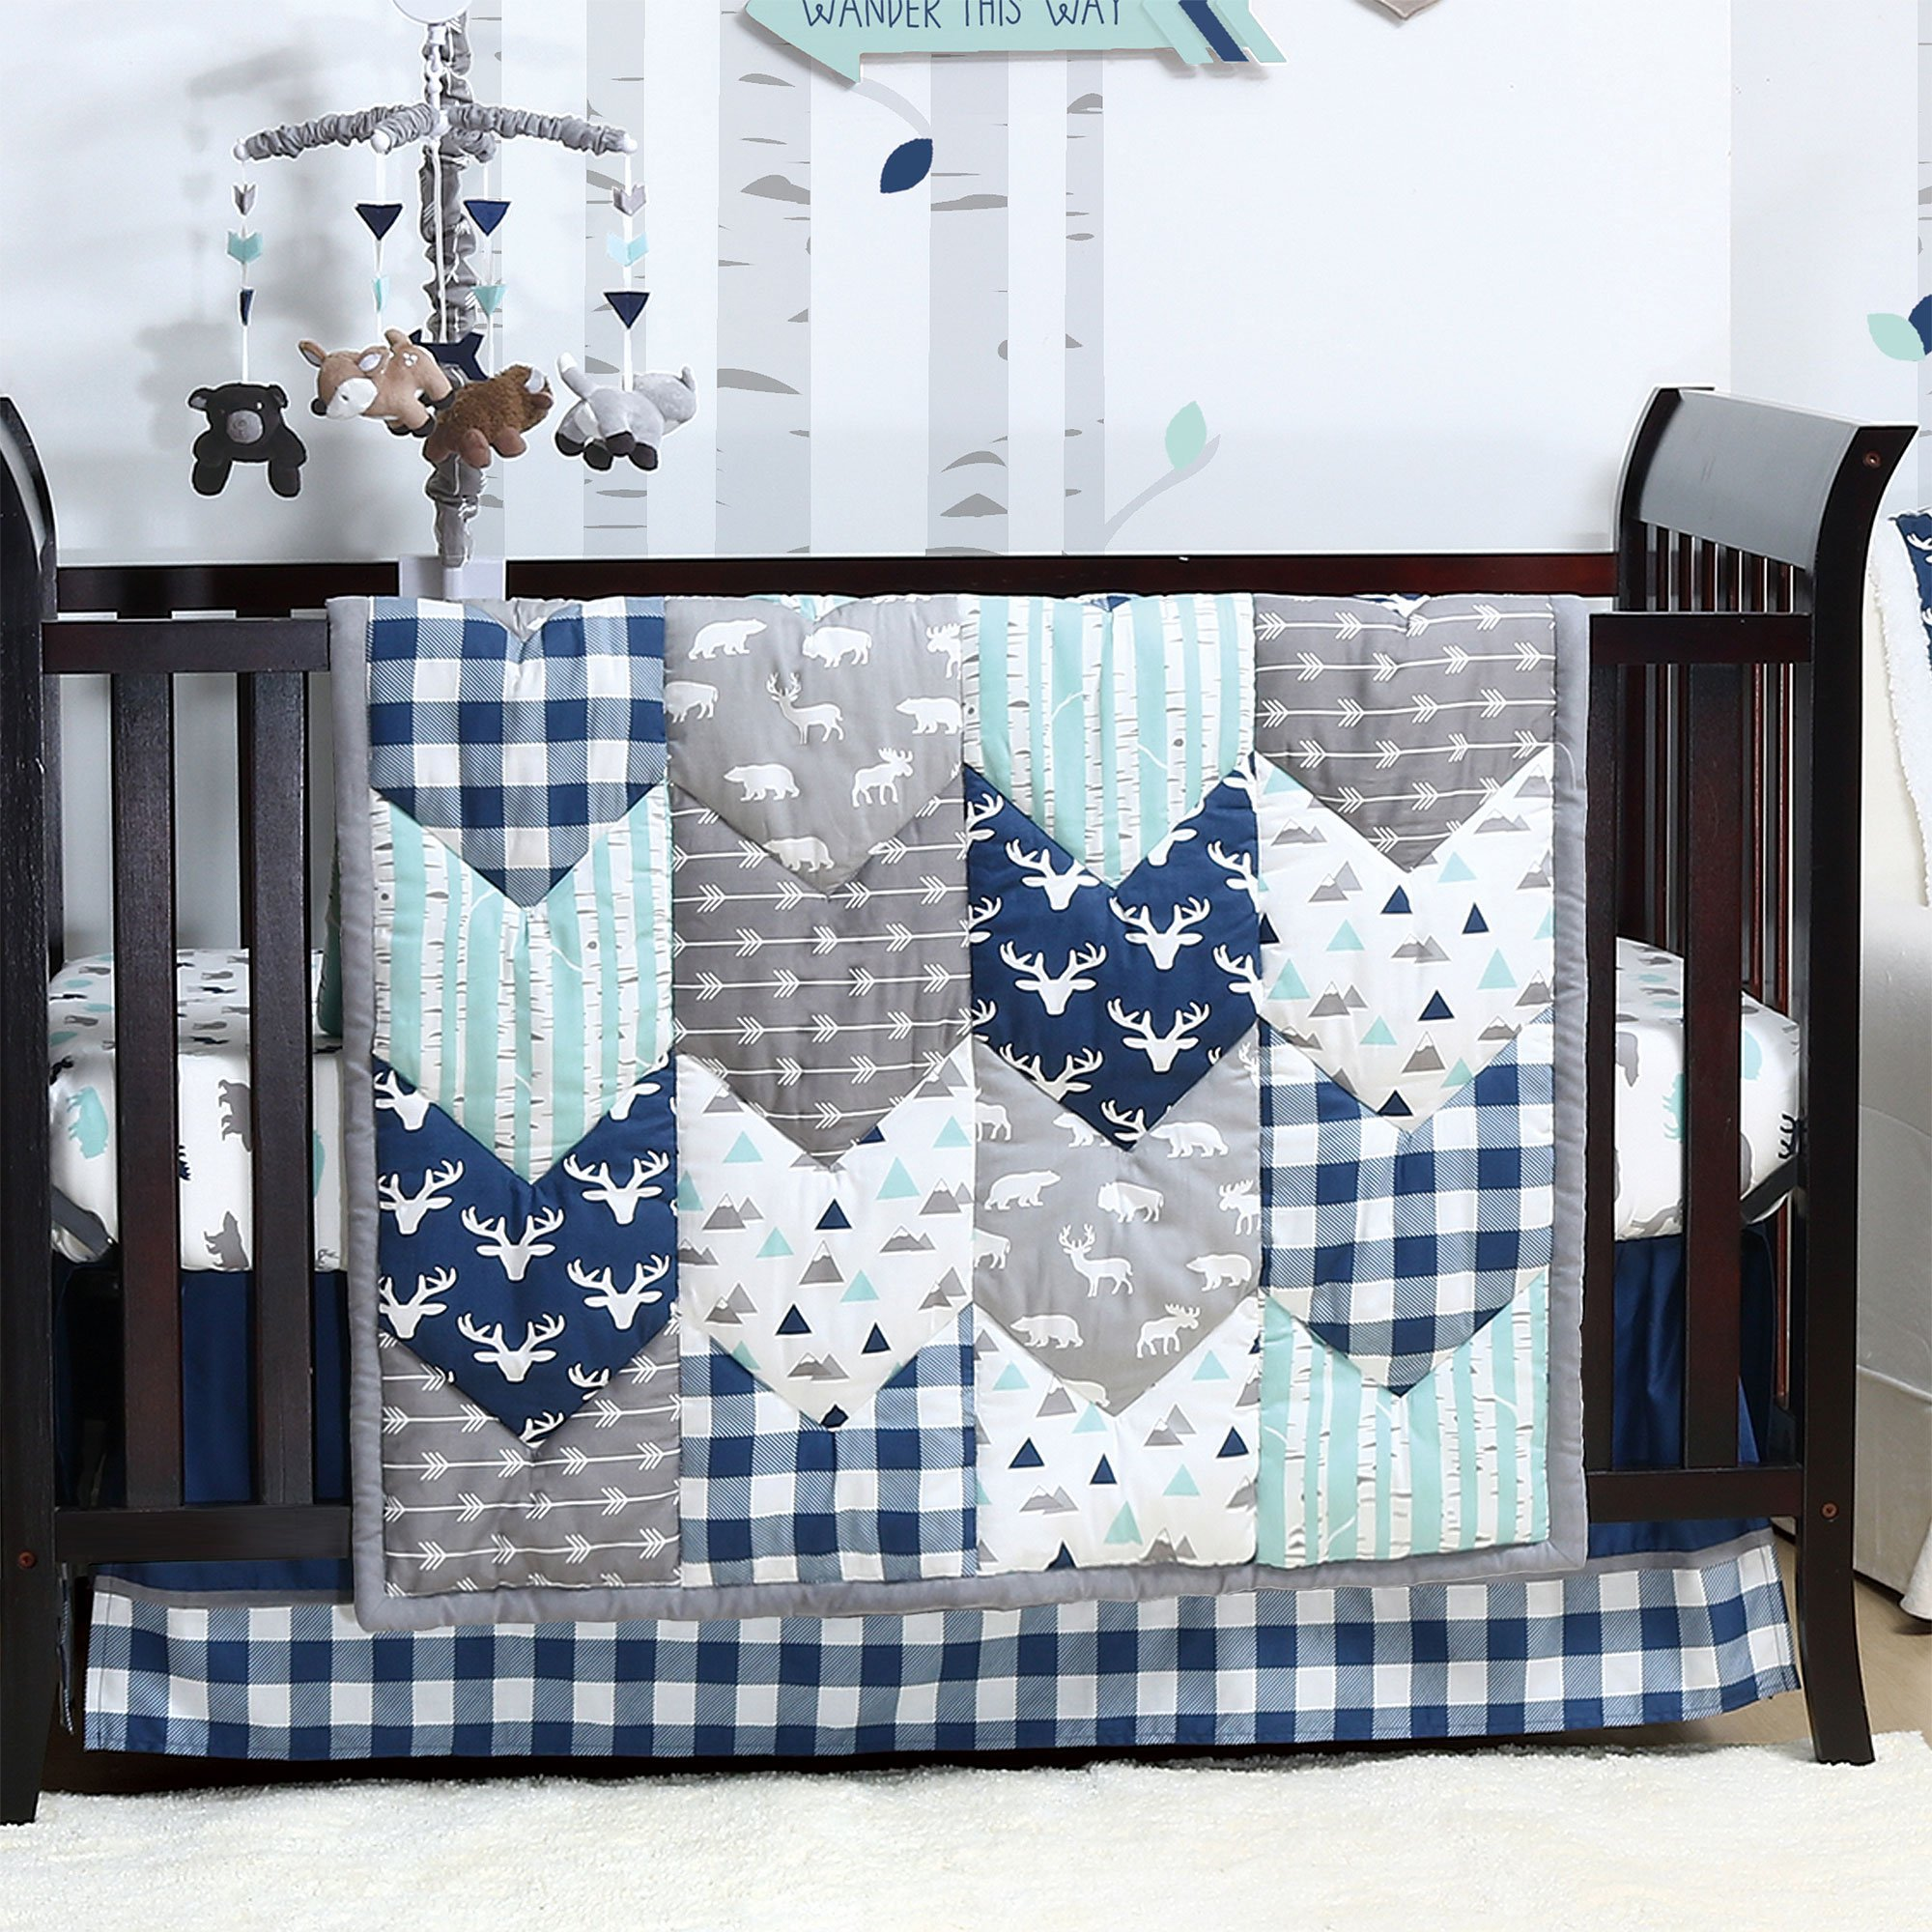 Woodland Trail 4 Piece Baby Boy Crib Bedding Set by The Peanut Shell